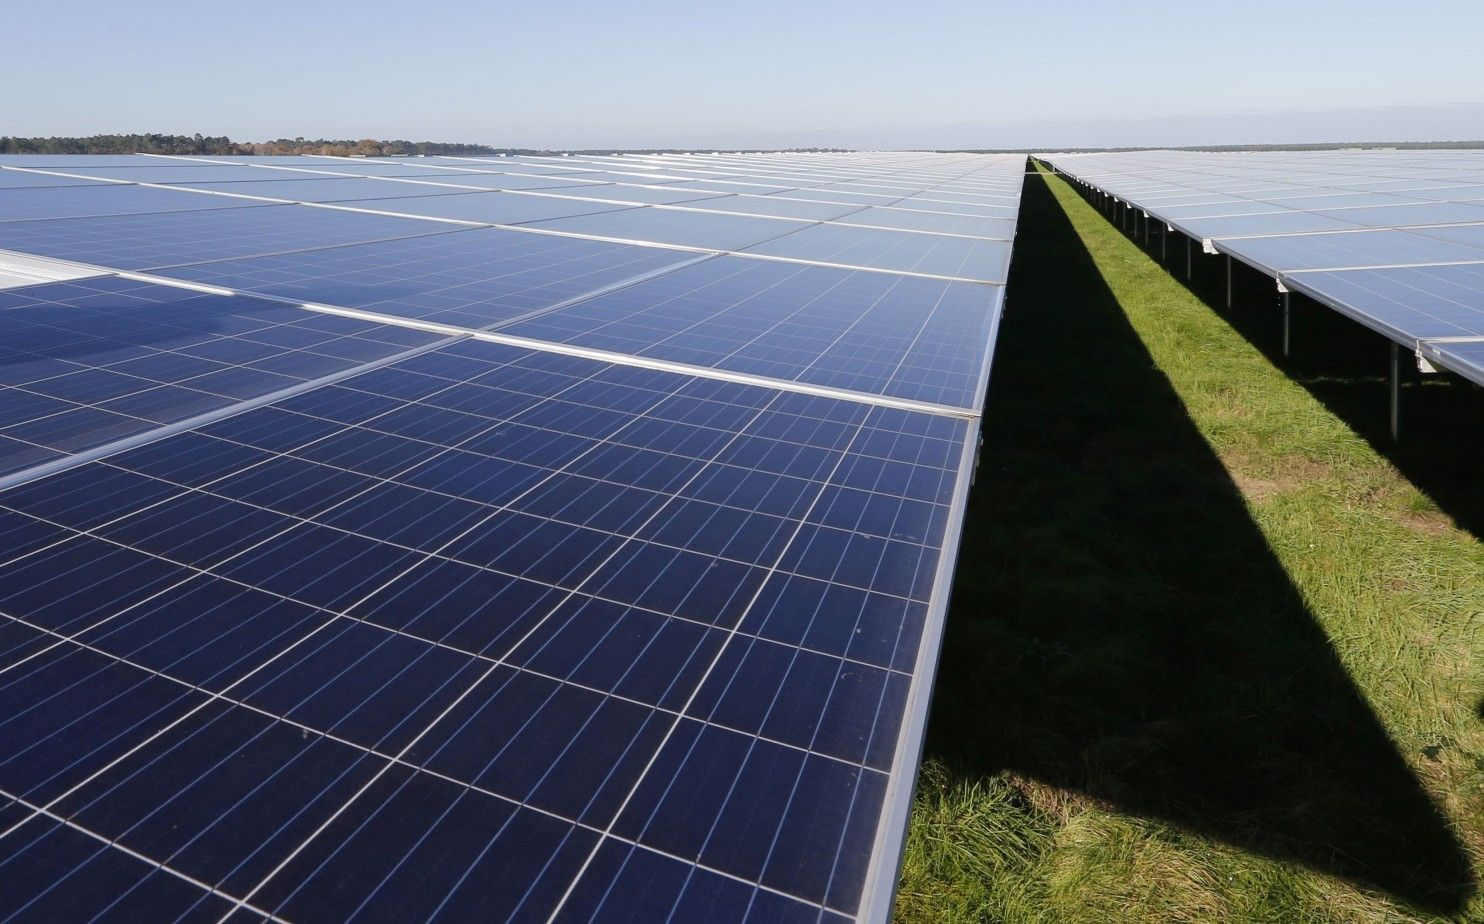 We Ve Been Underestimating The Solar Industry S Momentum That Could Be A Big Problem Solar Solar Power Panels Solar Power